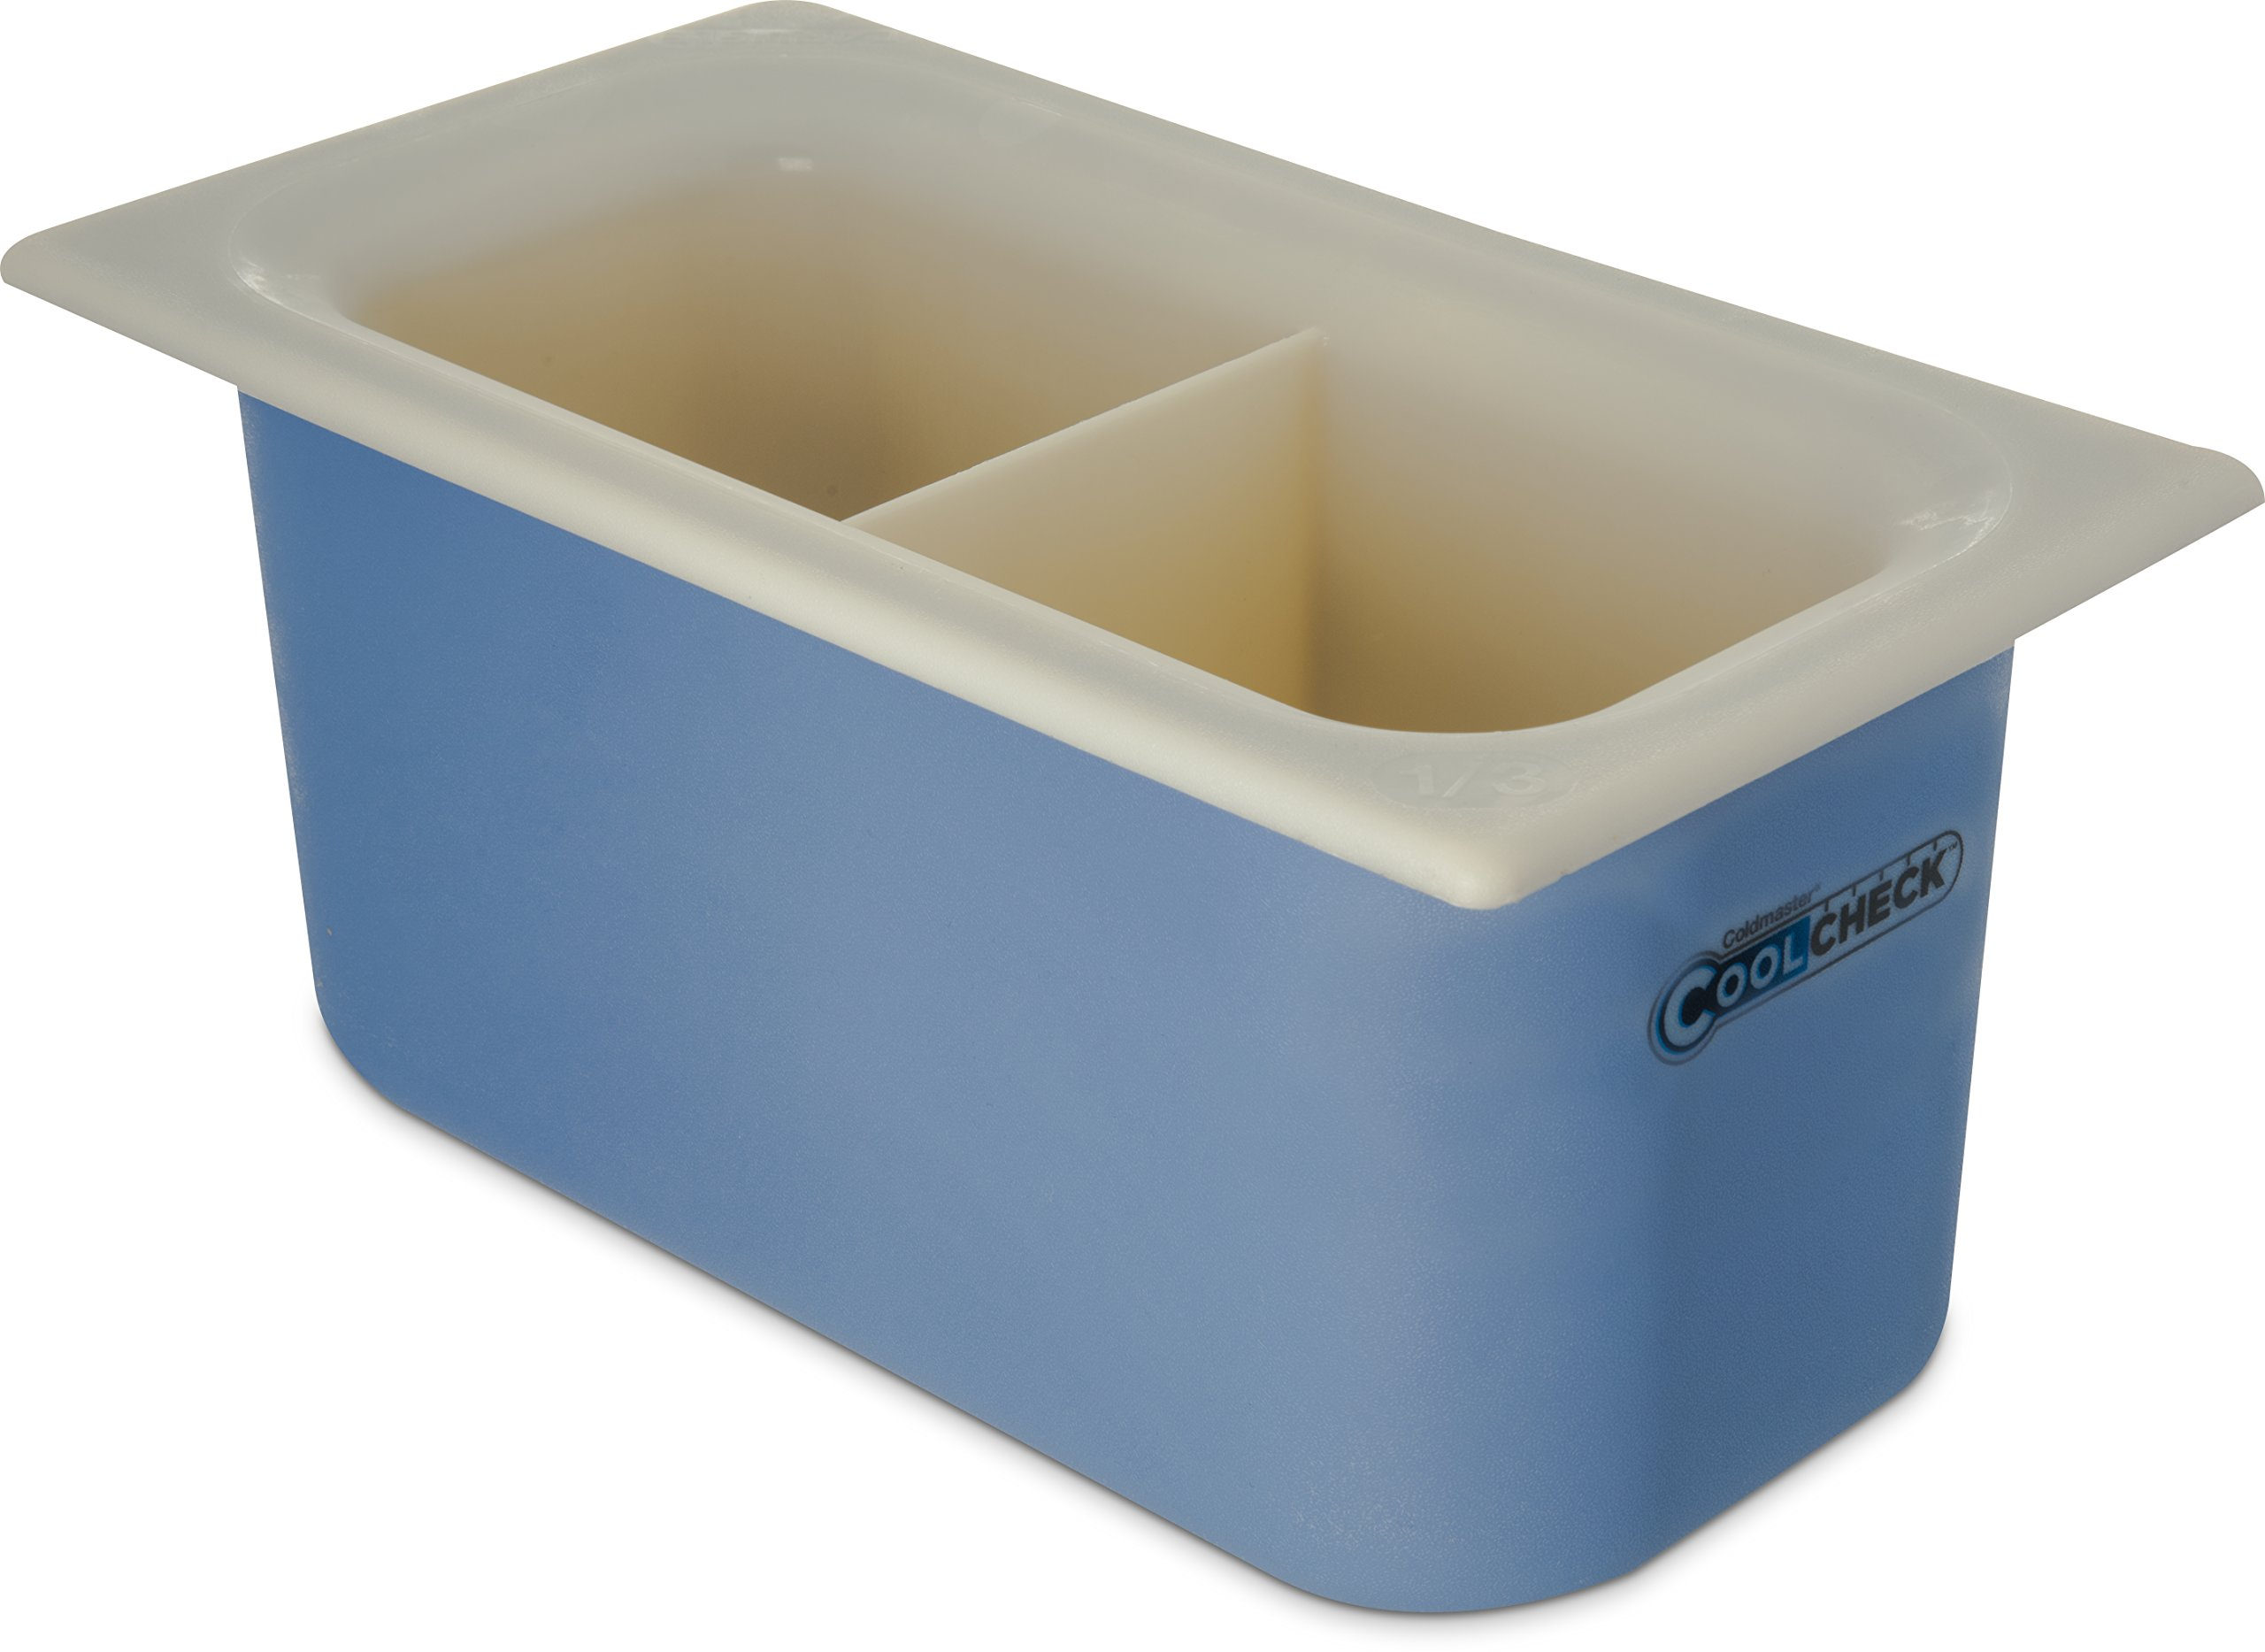 Carlisle CM1103C1402 Coldmaster CoolCheck 6'' Deep Third-Size Divided Insulated Cold Food Pan, 3.4 Quart, Color Changing, White/Blue